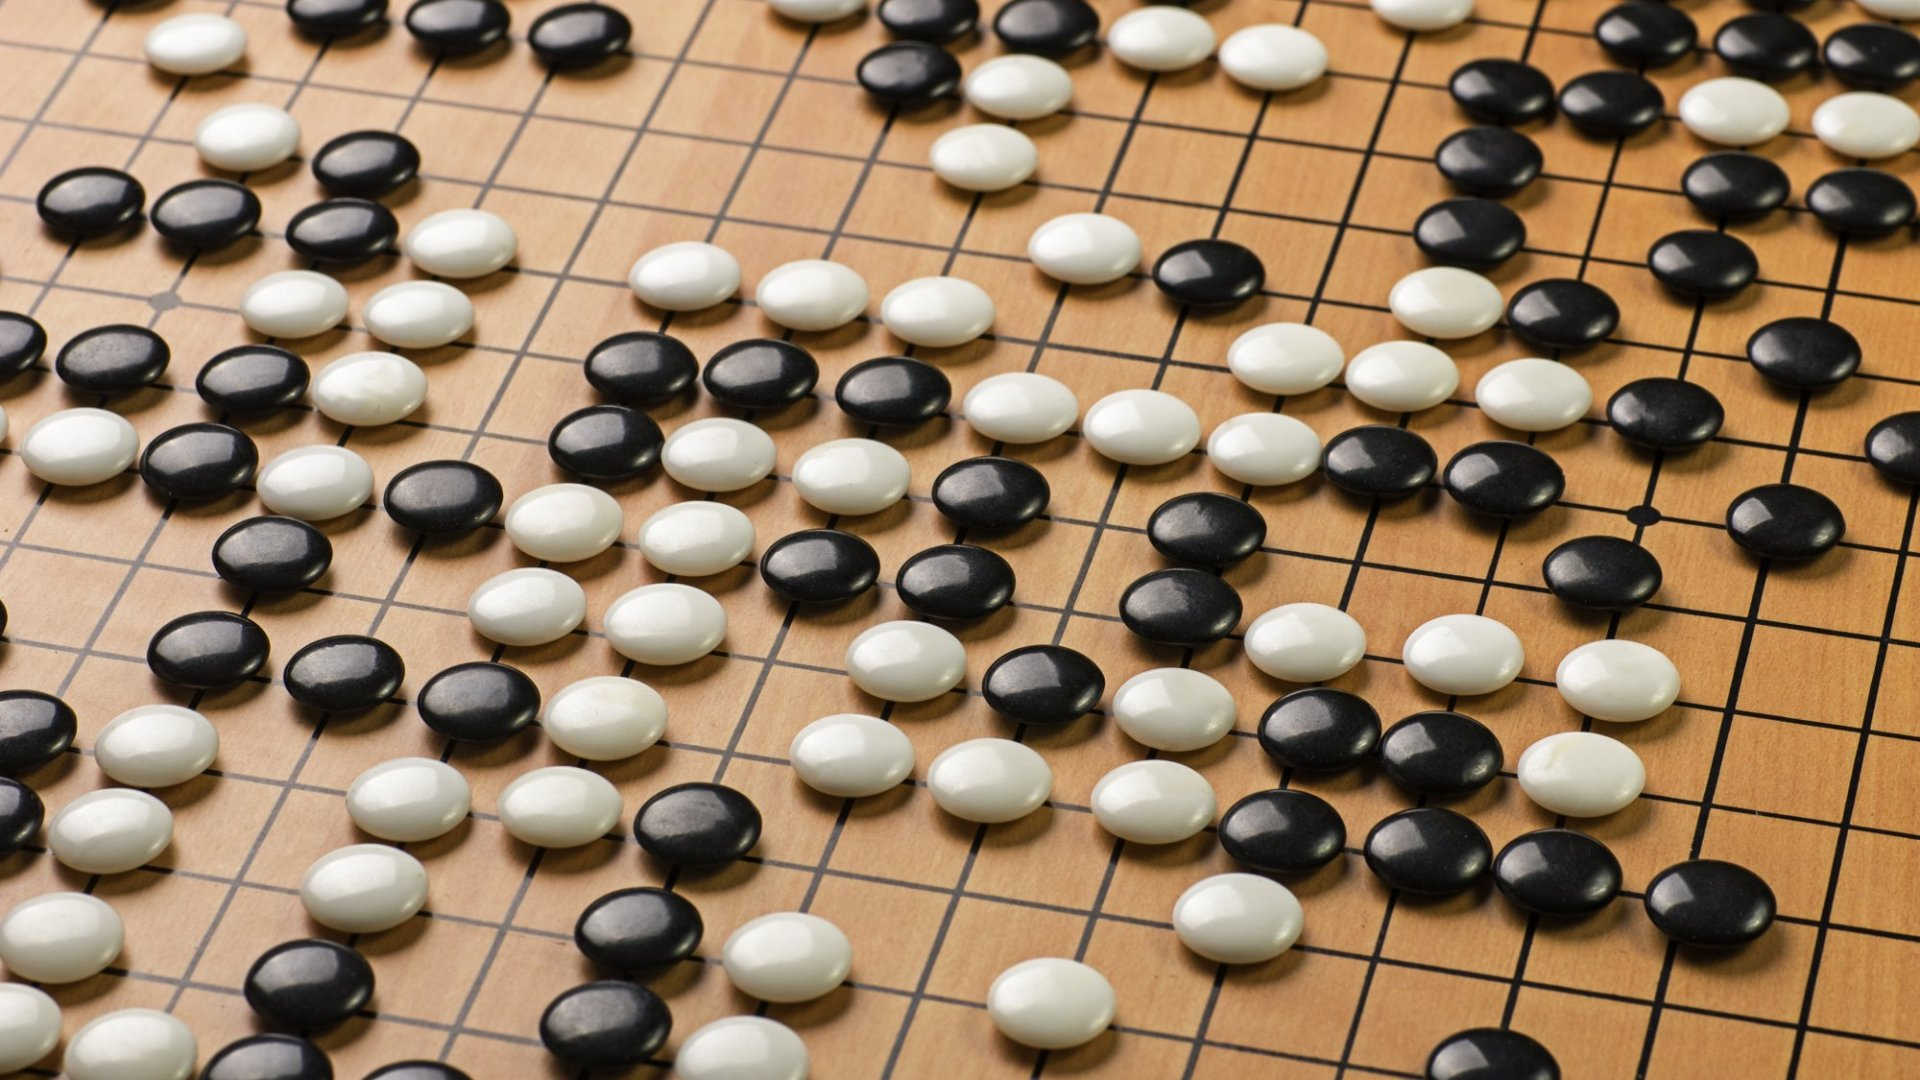 Still Trying To Demystify AI? Here's A Simple Analogy That Even A 10-Year-Old Can Follow.